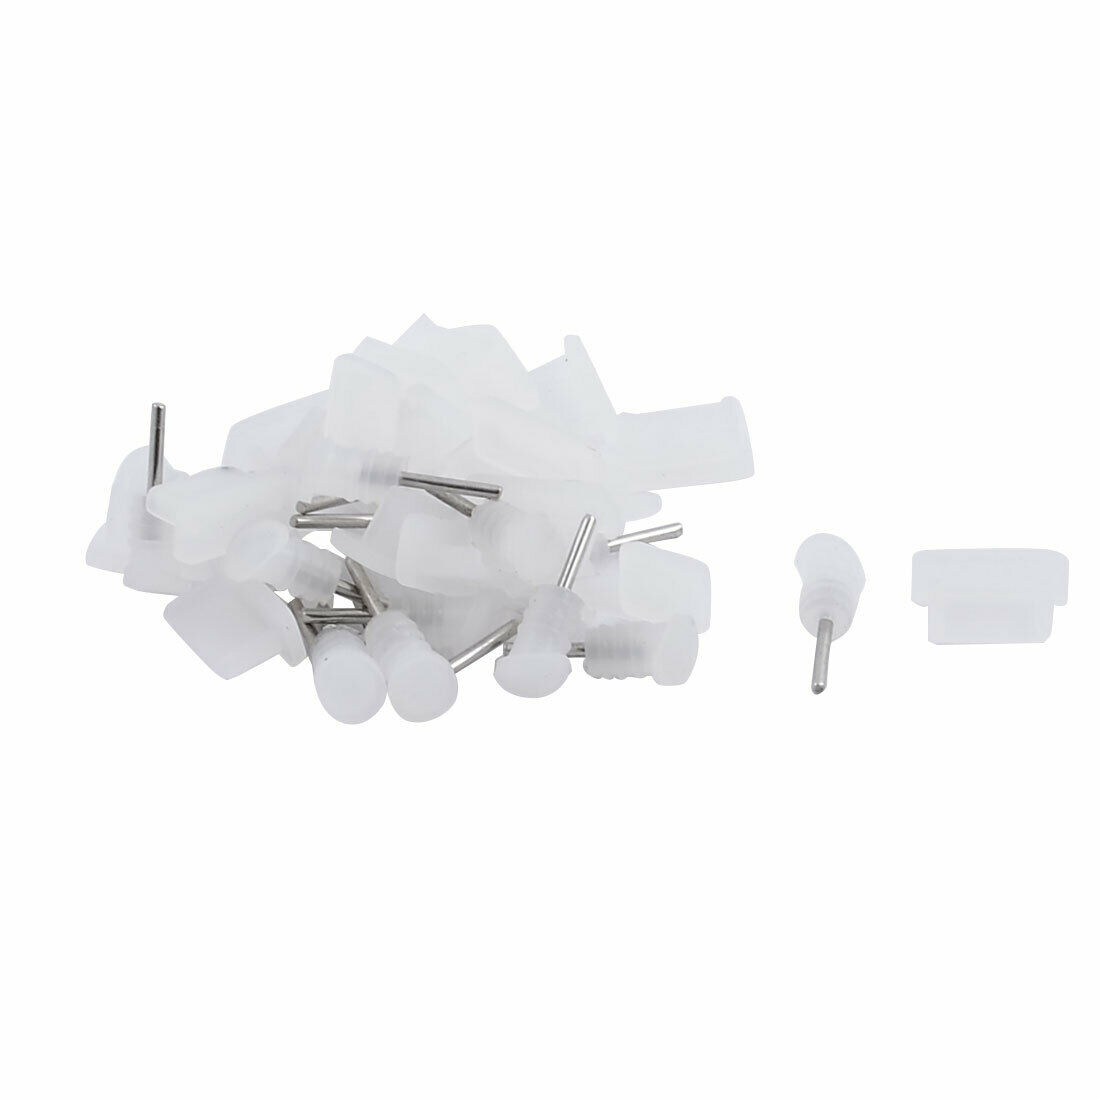 Silicone Earphone Dock Port Anti Dust Stopper Cap Clear 20 Set for Type C Phone